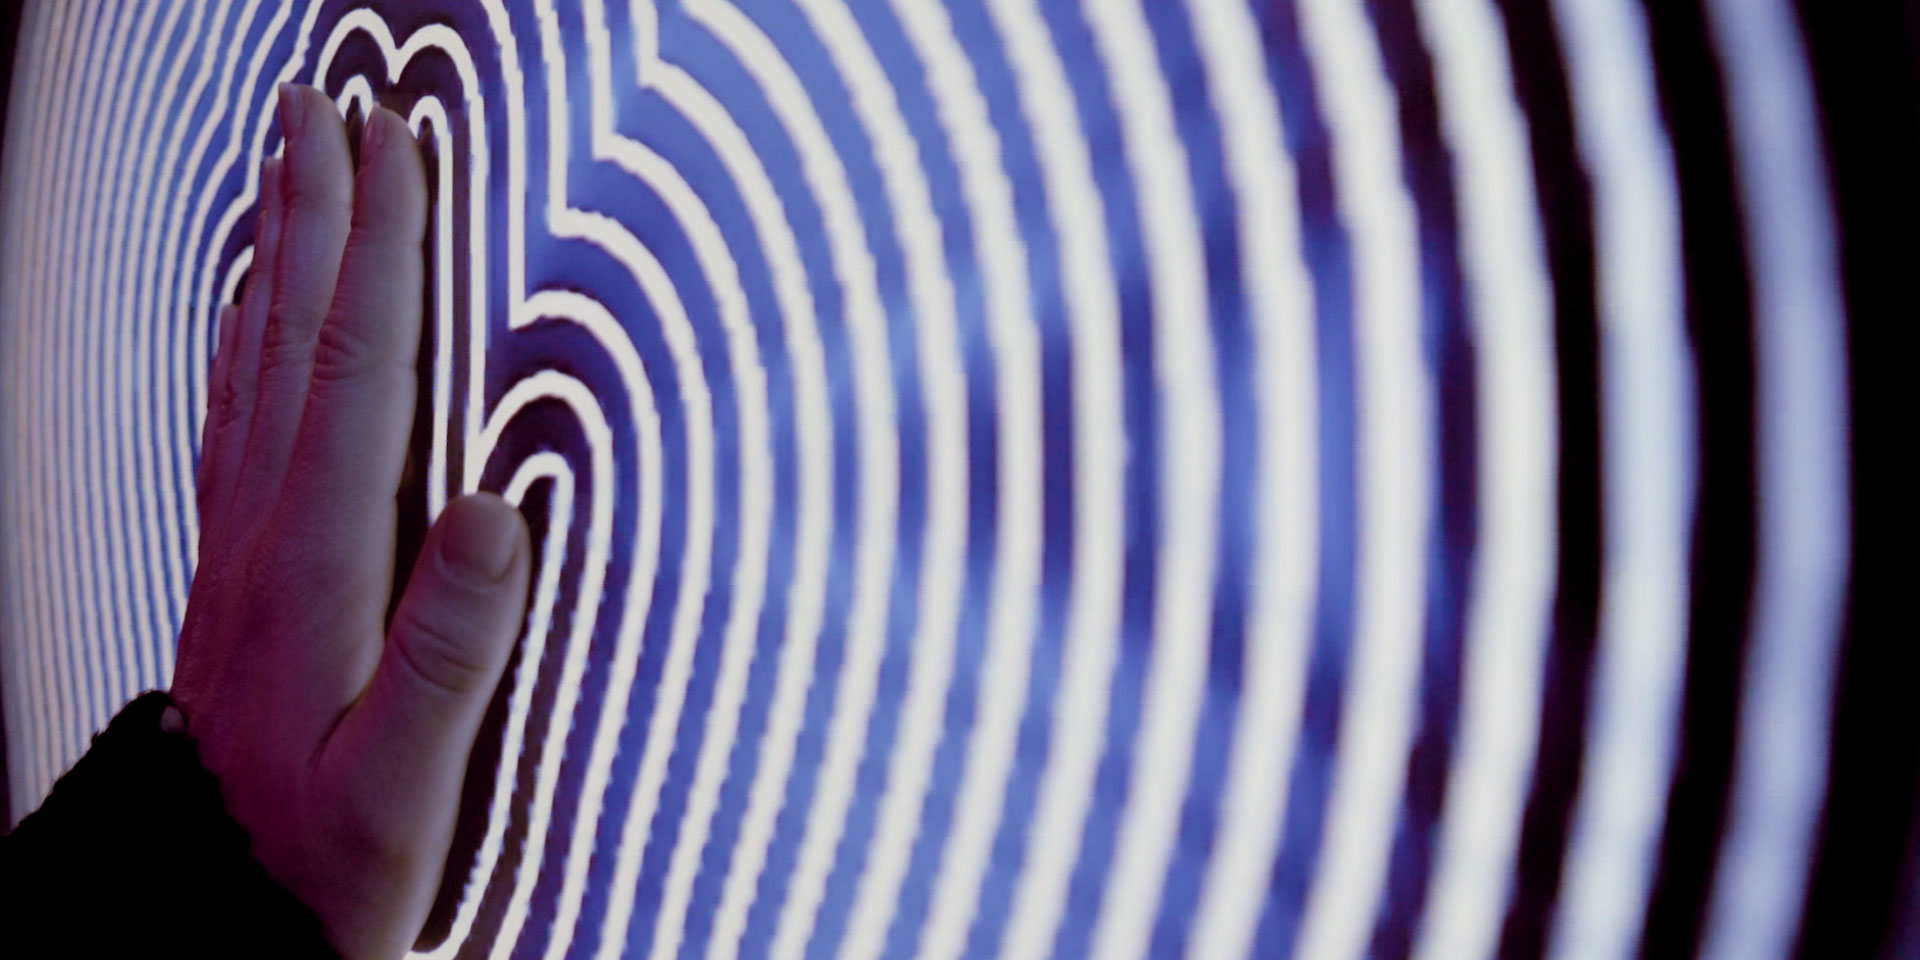 Projects_ExtendingReality_photo03